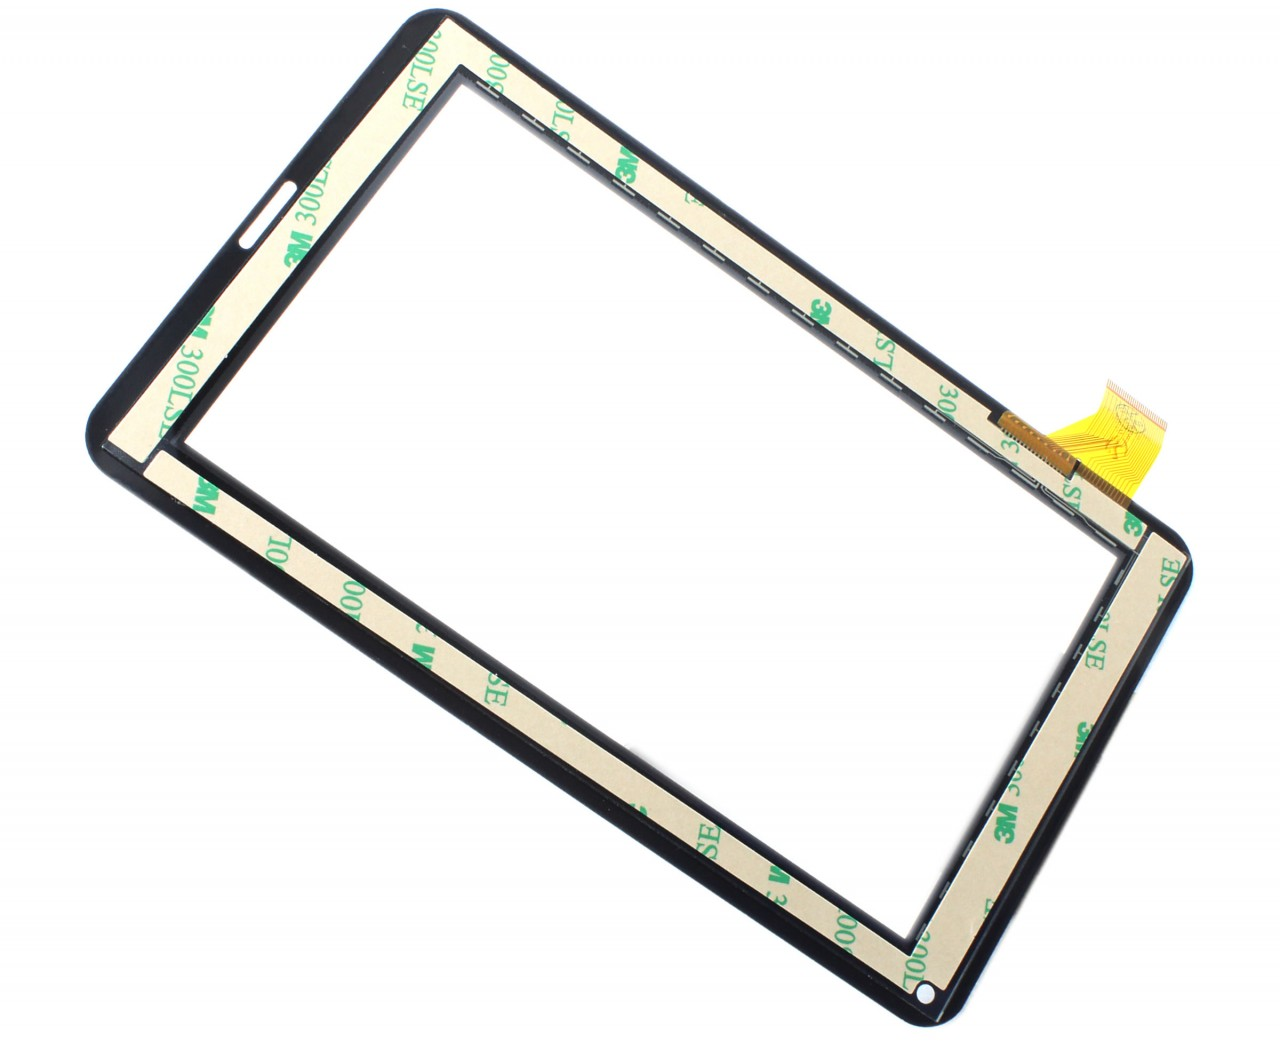 Touchscreen Digitizer Serioux S700 VisionTAB S700TAB Geam Sticla Tableta imagine powerlaptop.ro 2021